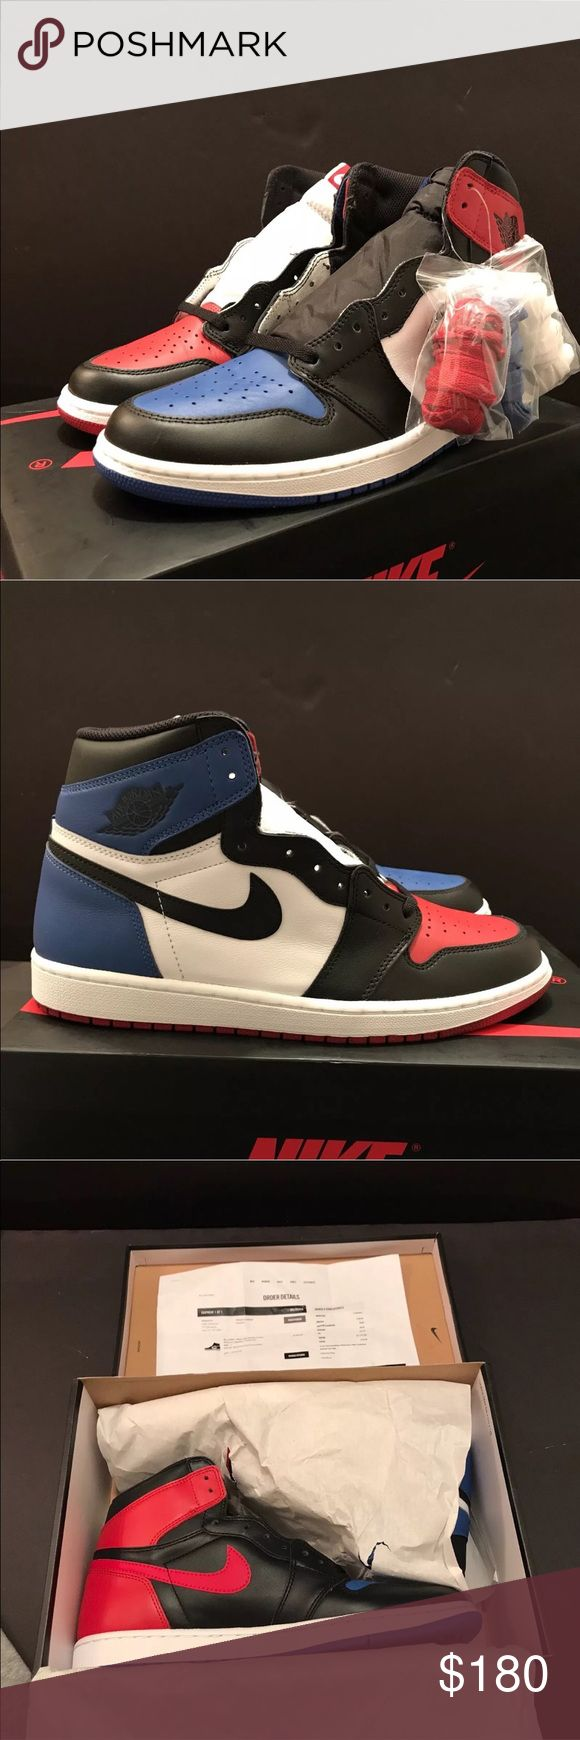 Air Jordan 1 Retro Top 3s 100% Authentic 🔷 We are a very negotiable service 🔷 We provide overnight shipping and express shipping 🔷 Our transactions are made through third party applications 🔷 If you are interested in buying this product please contact us @ 646-961-2836 🔷 Air Jordan Shoes Sneakers